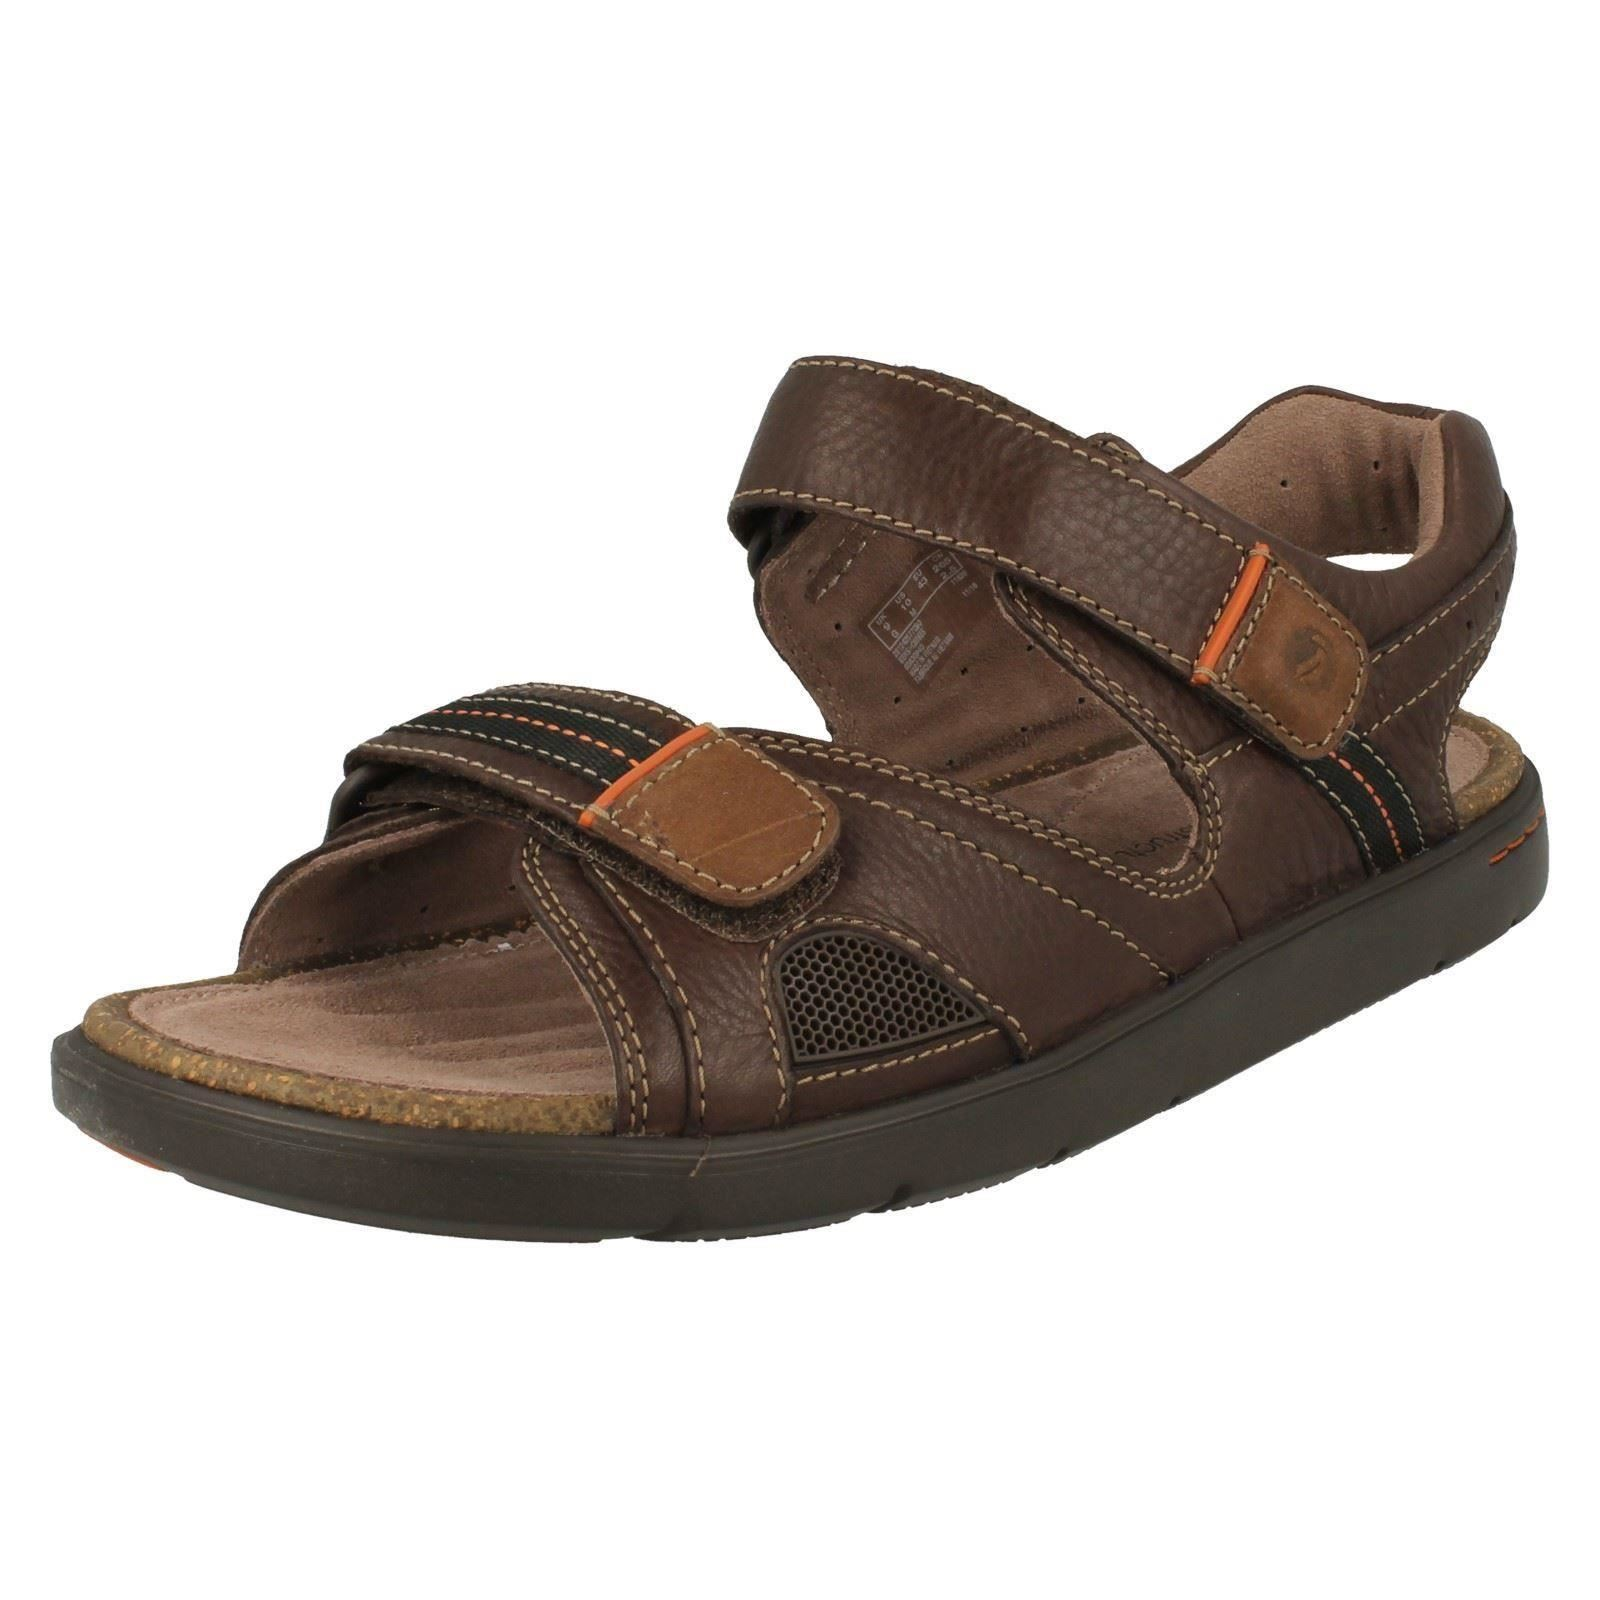 Mens by Unstructured by Mens Clarks Sandals Unwilmore Sun. d54bc4